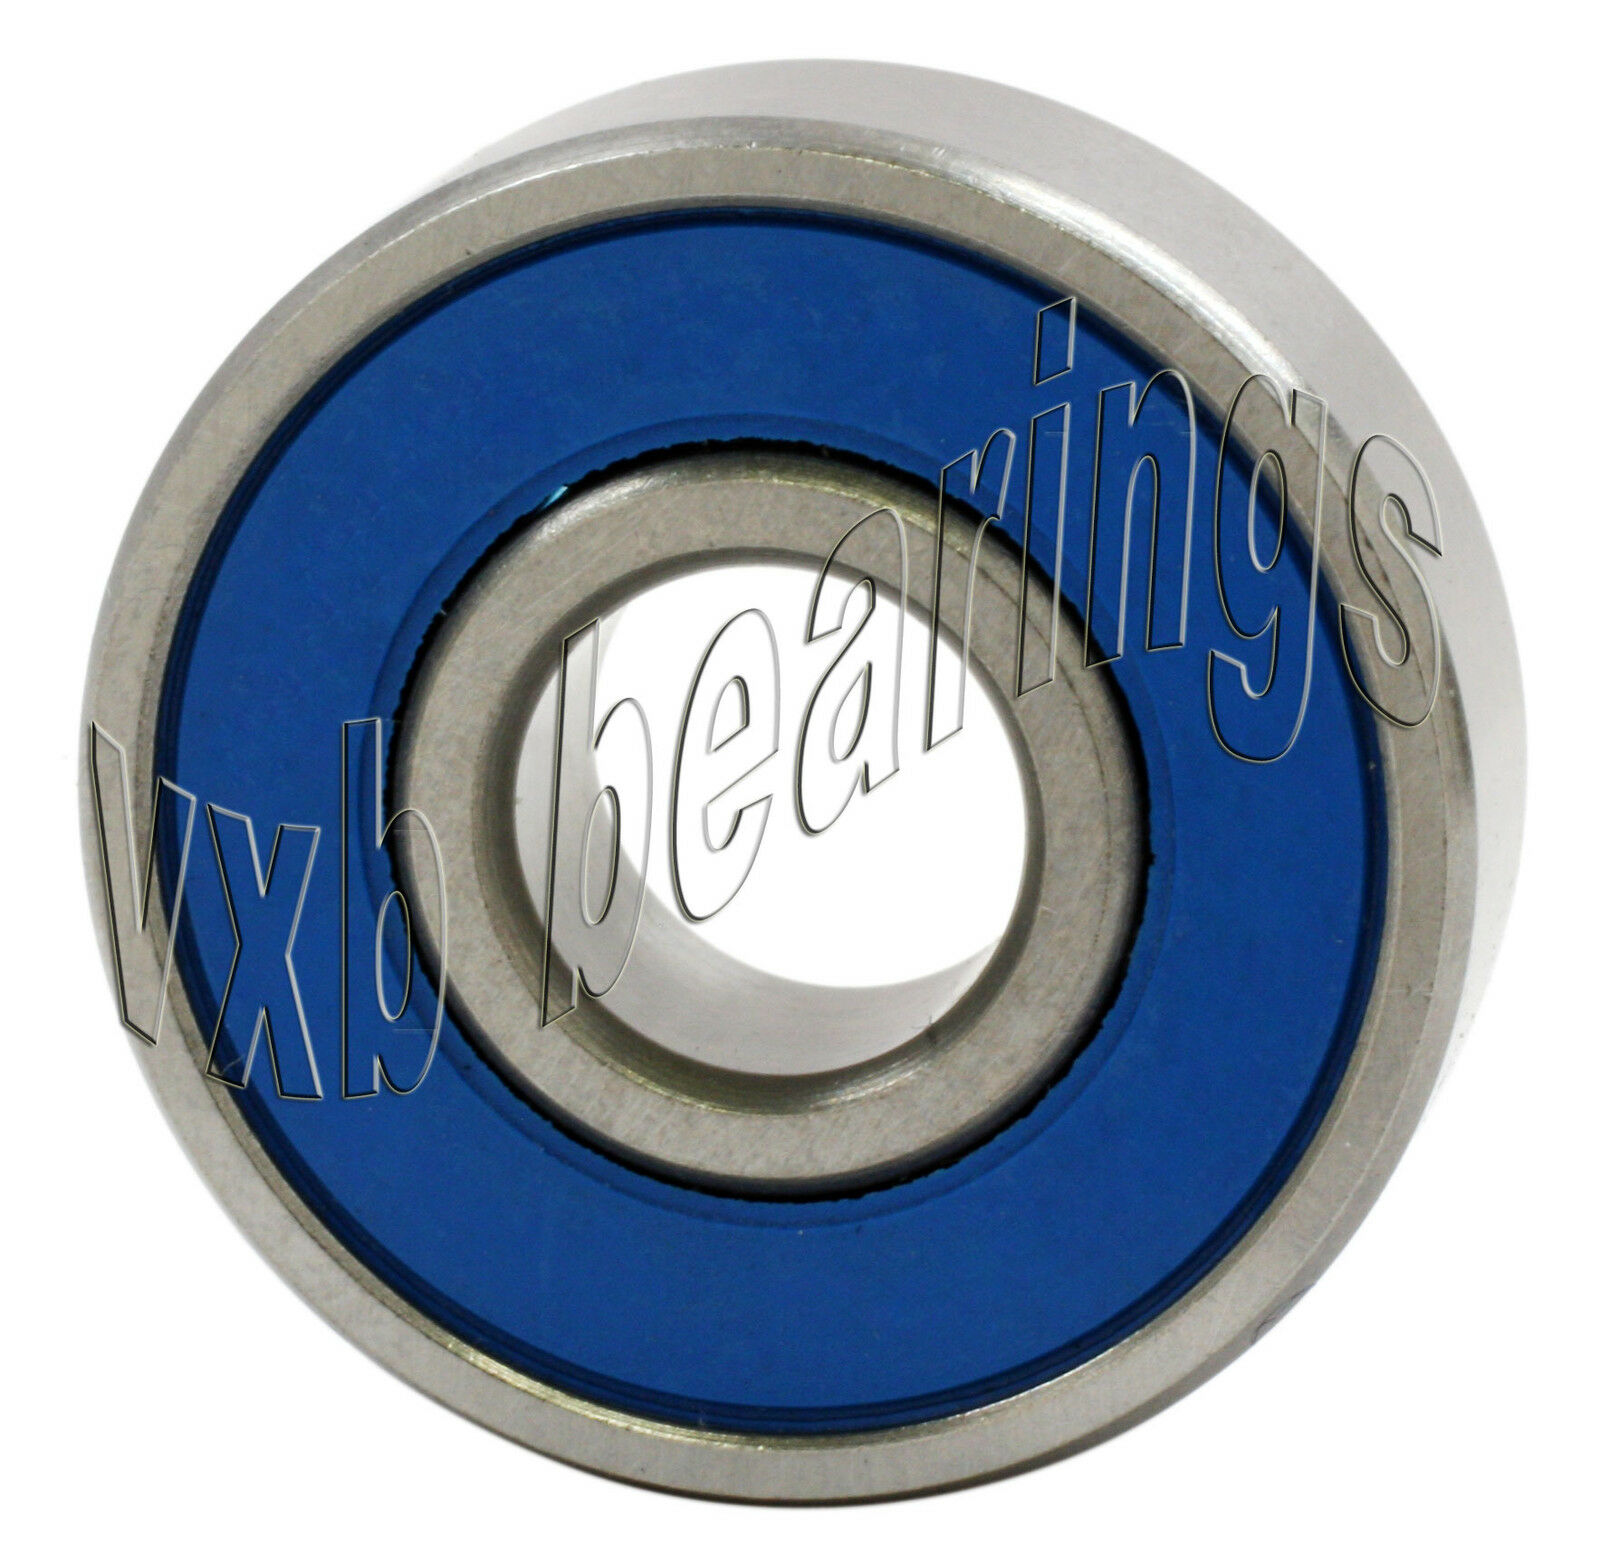 S6809RS Bearing 45x58x7mm 440C Stainless Steel S6809-2RS Stainless Steel Ball Bearings ABEC-3 Rubber Sealed Pick of 2PC